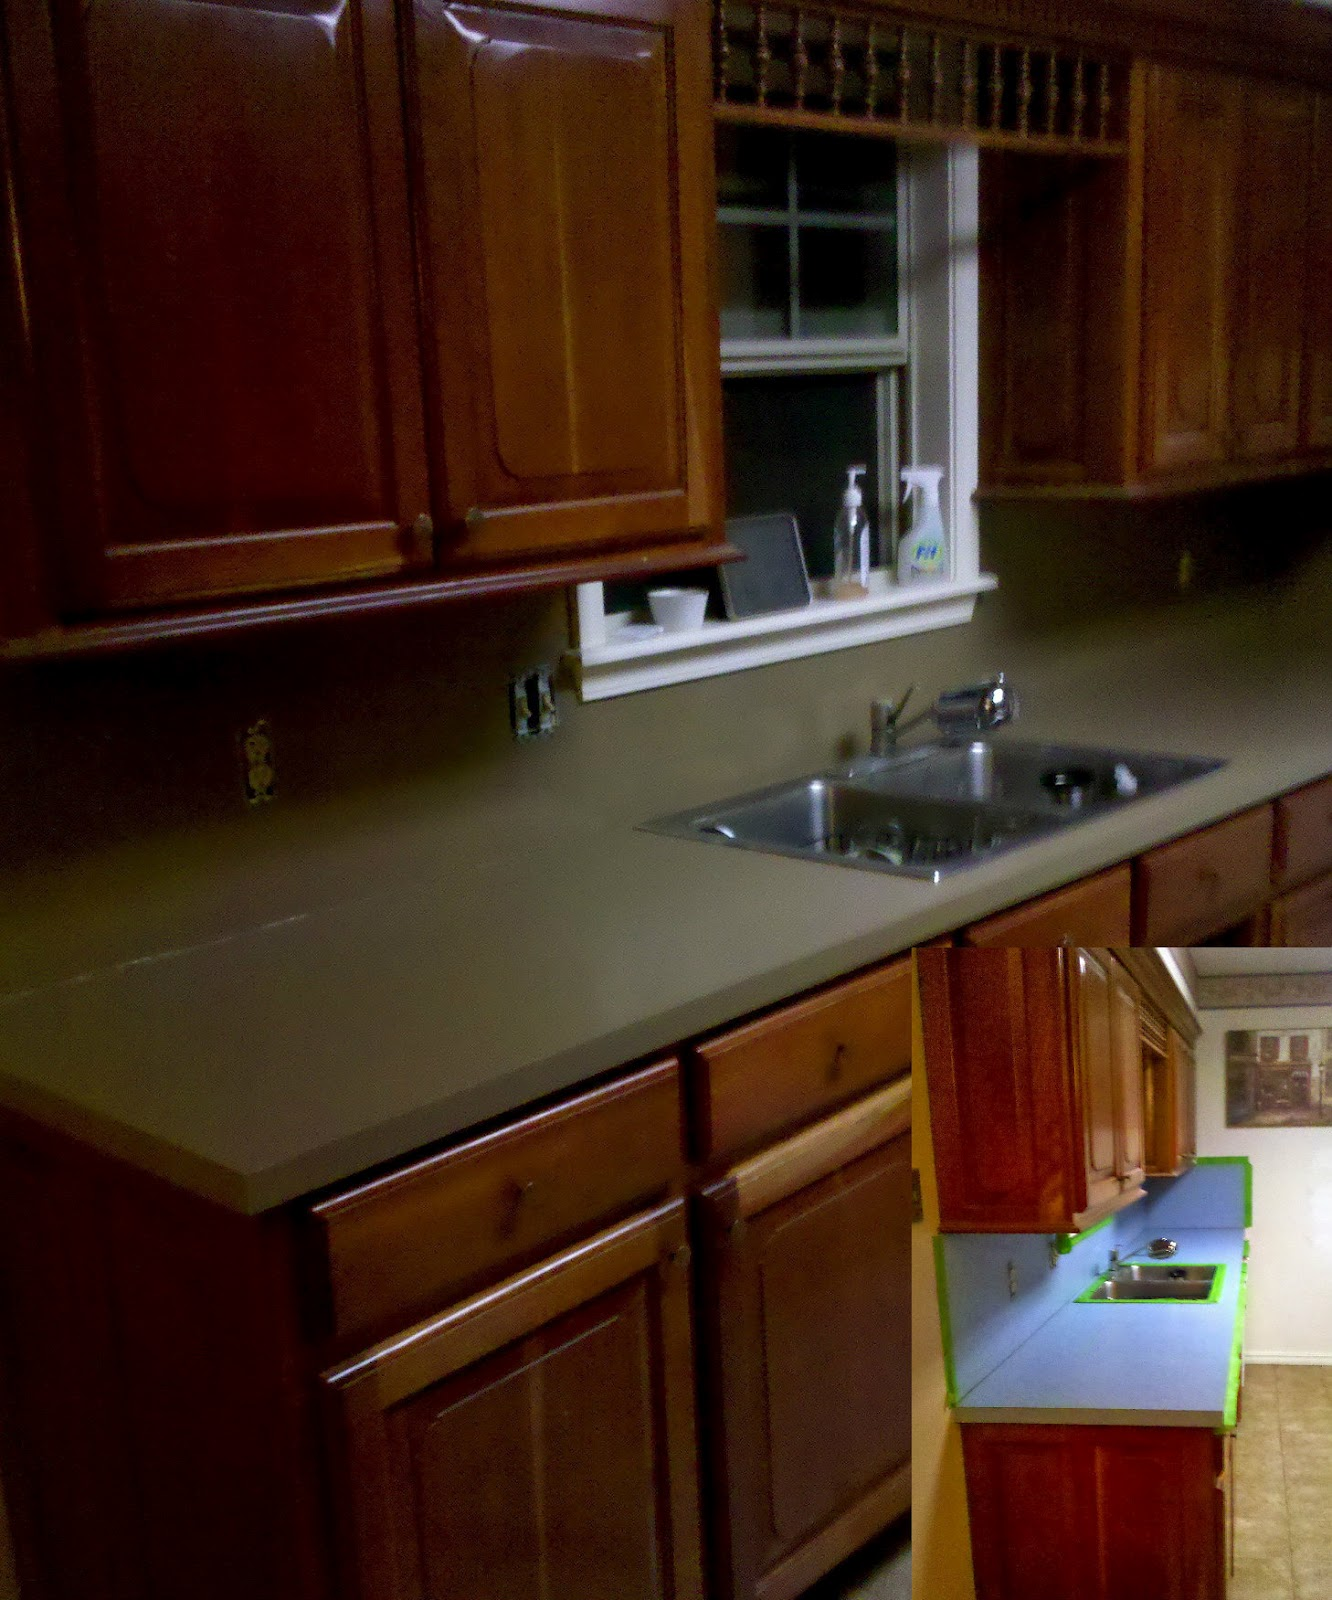 Countertop Makeover: Rustoleum Laminate Coating